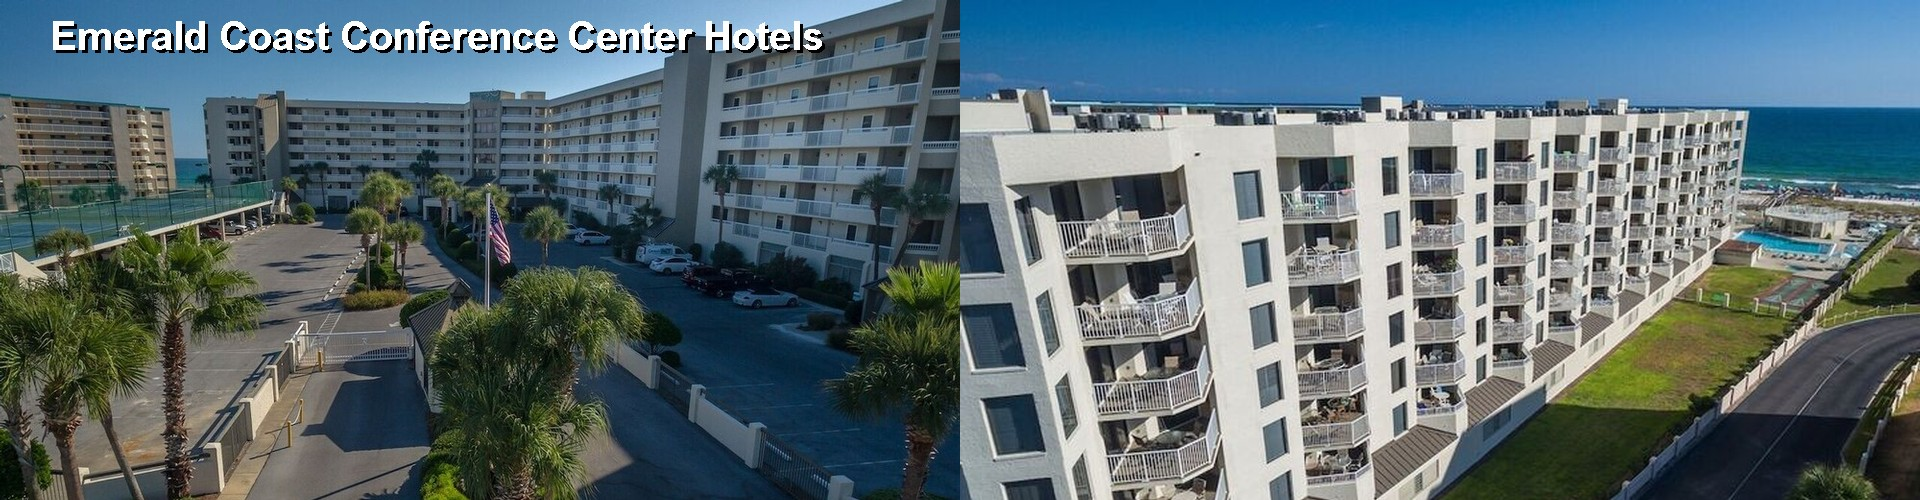 5 Best Hotels Near Emerald Coast Conference Center